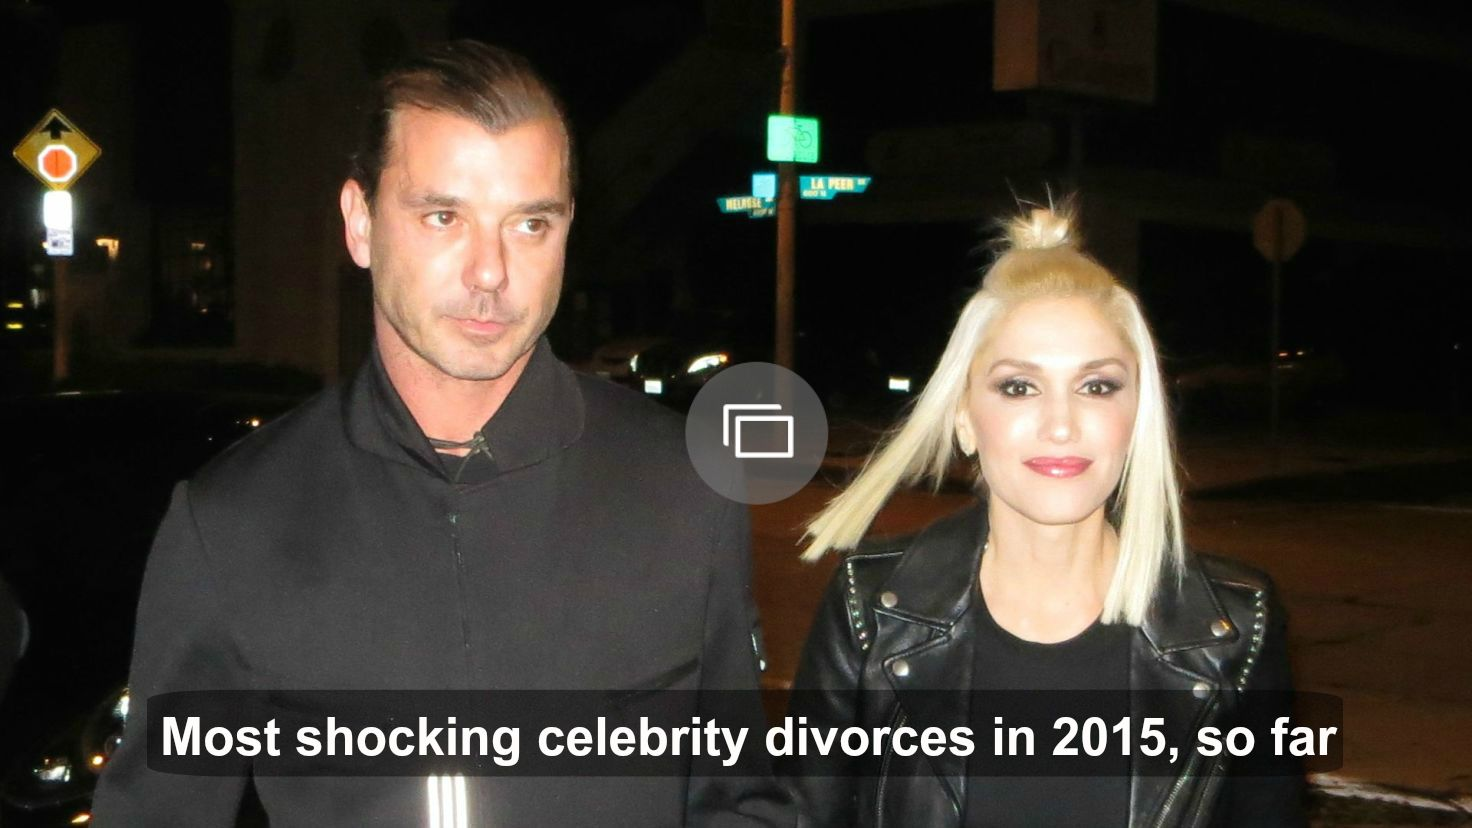 Celebrity divorces in 2015